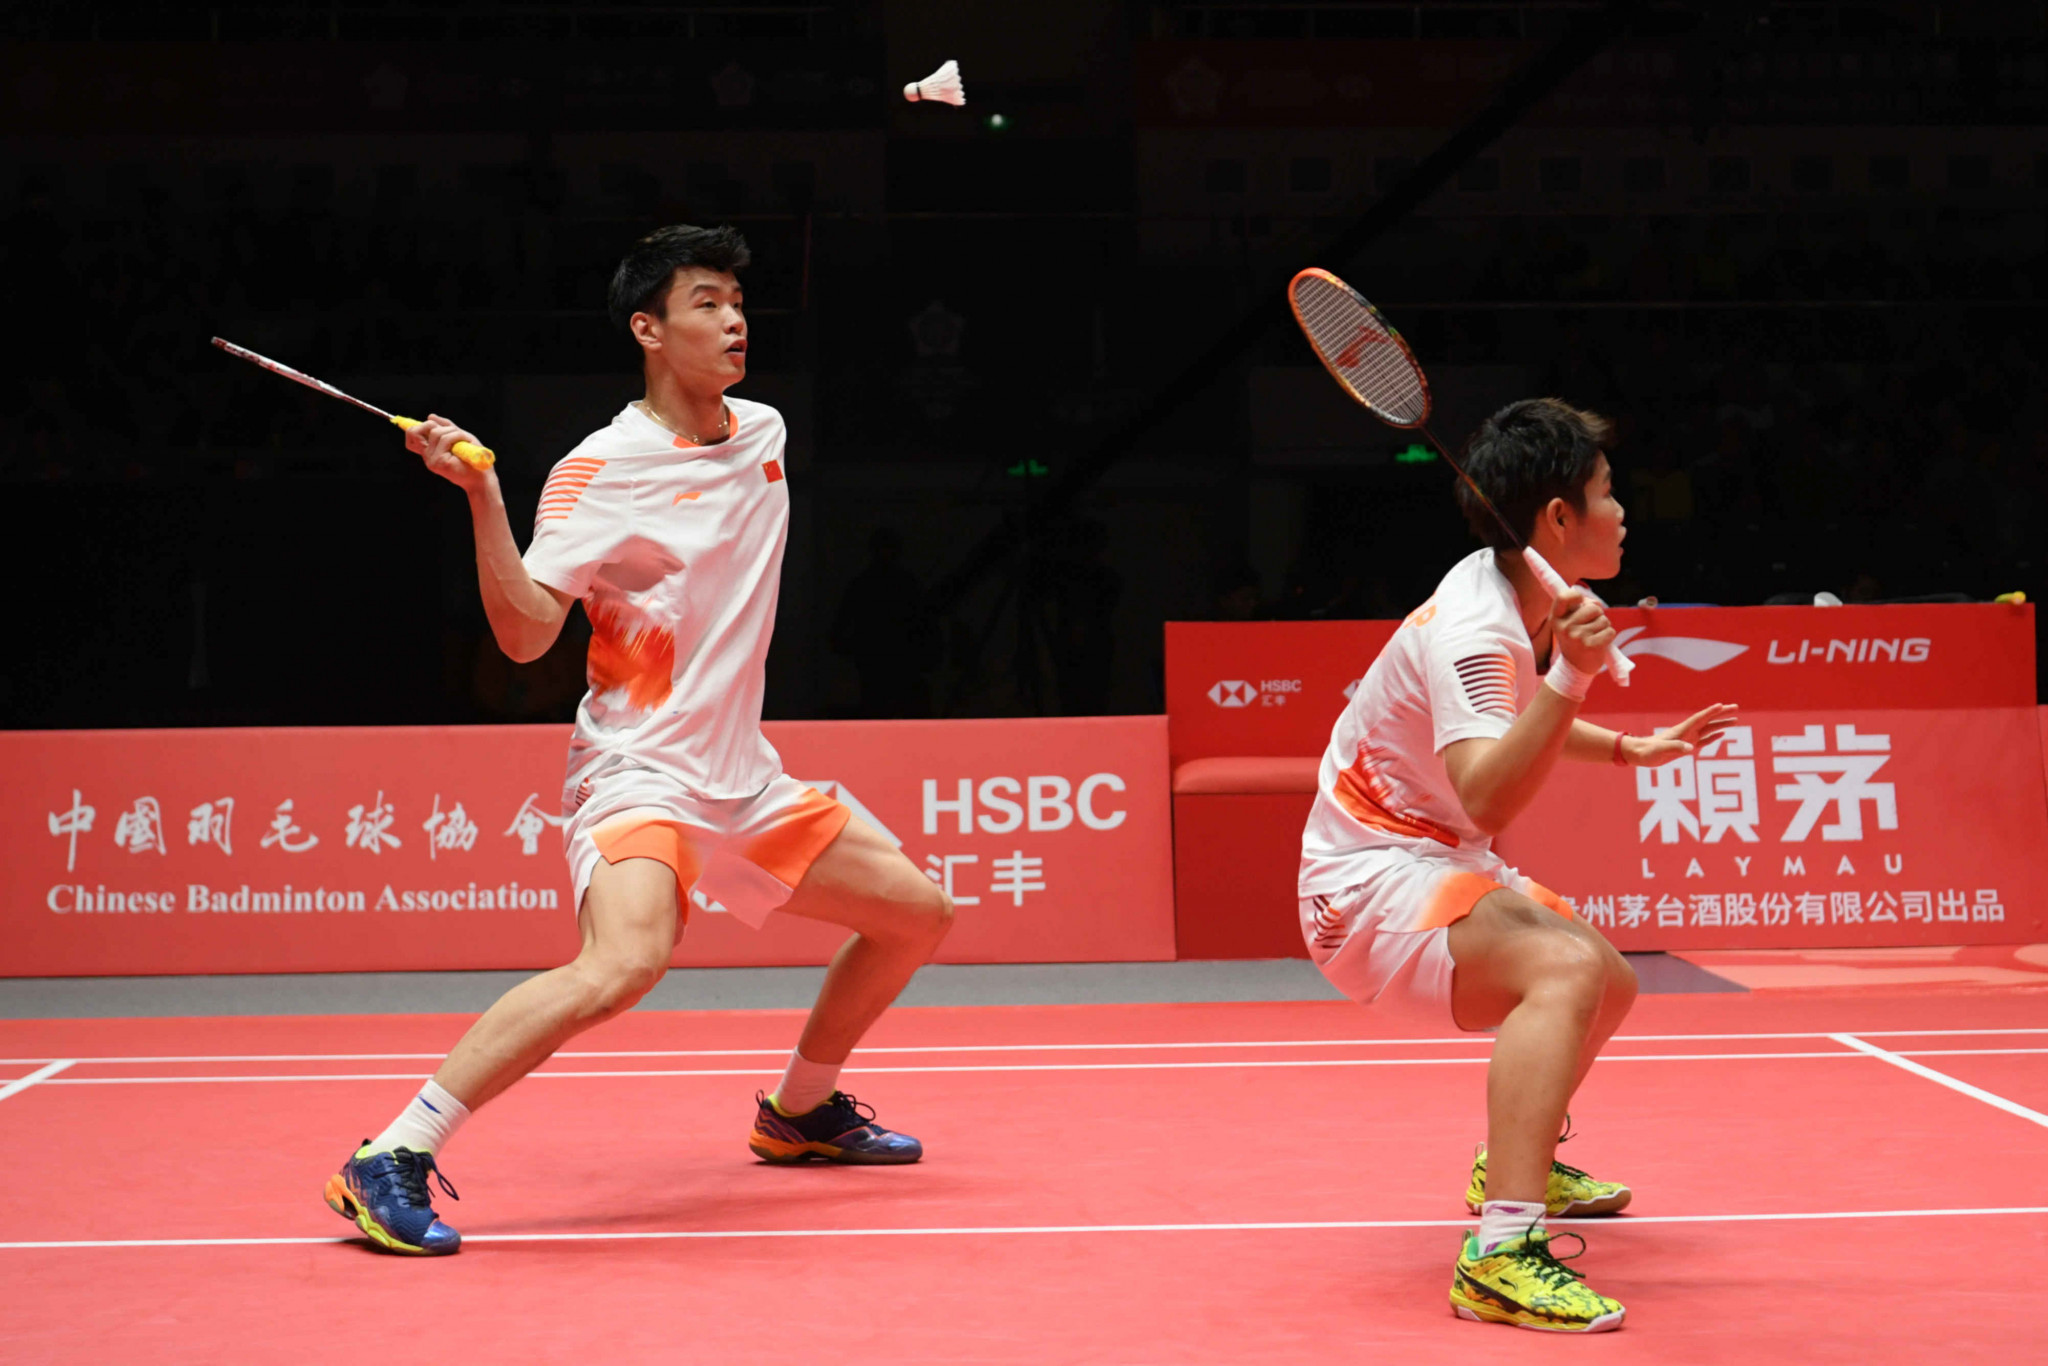 Reigning mixed doubles world champions Zheng Siwei and Huang Yaqiong survived a scare as they booked their place in the second round ©Getty Images